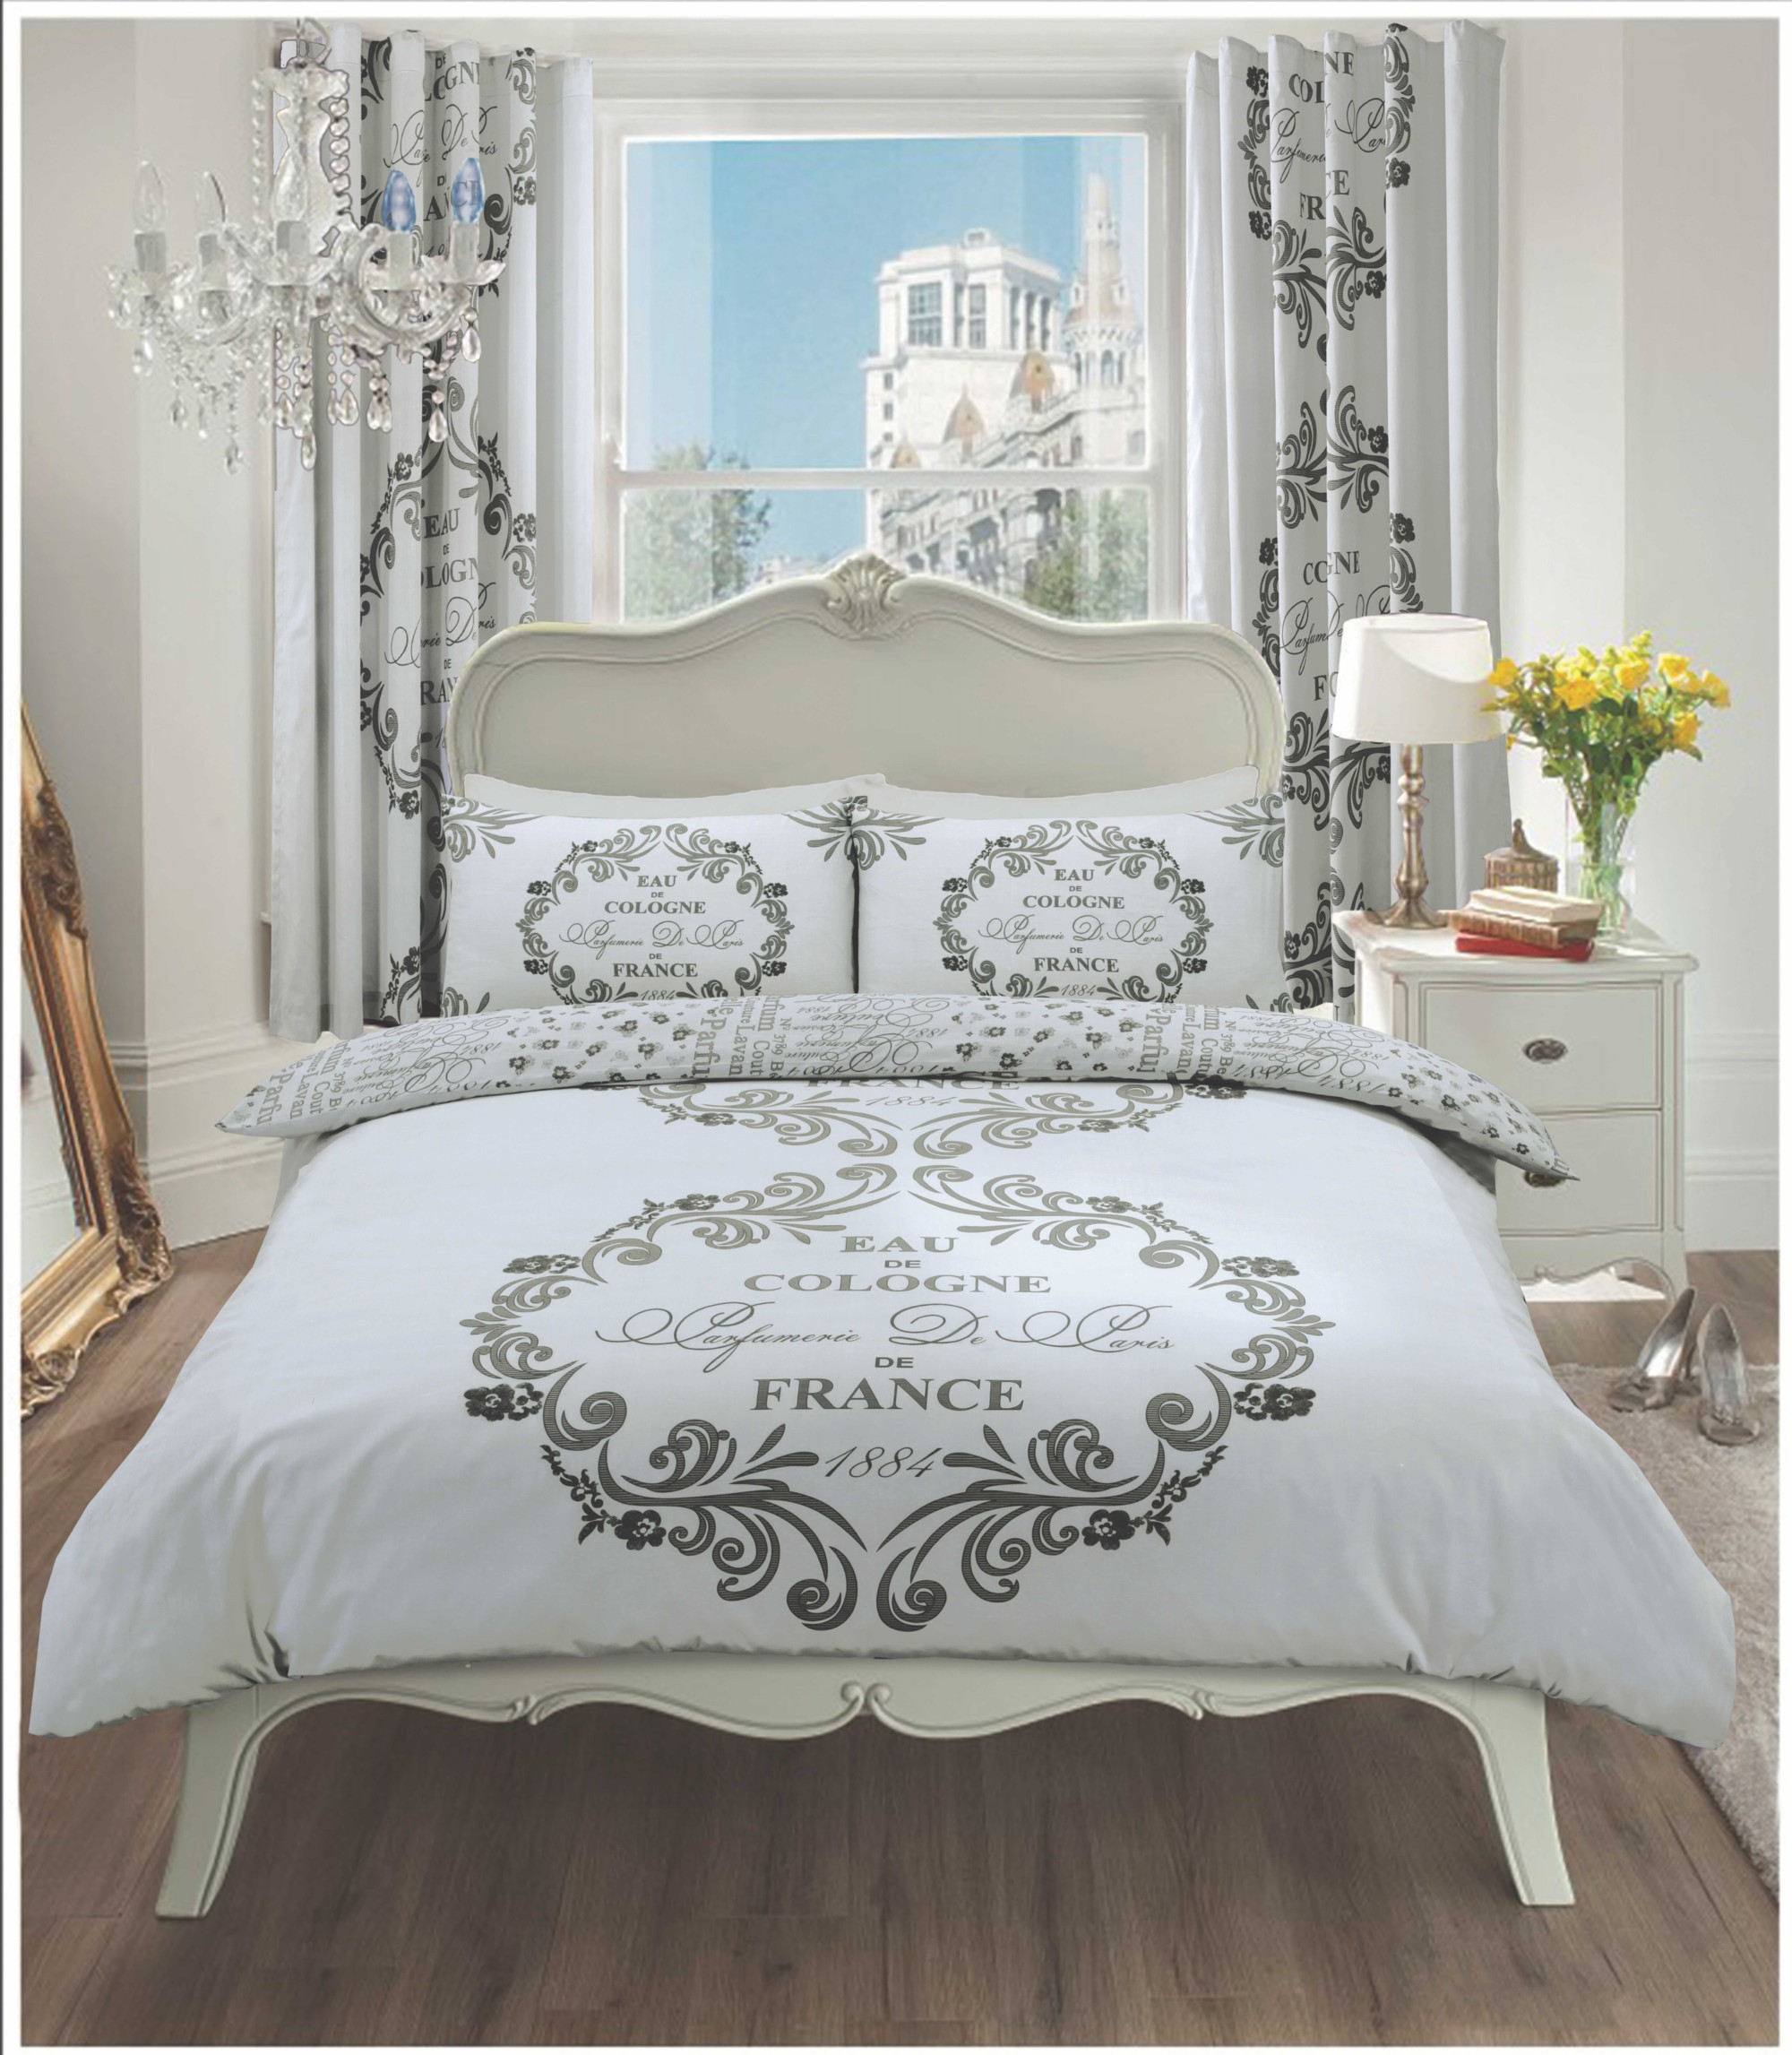 size bed and bedroom endearing with white using comfortable set sets platform quilt duvet for cover king when wondrous